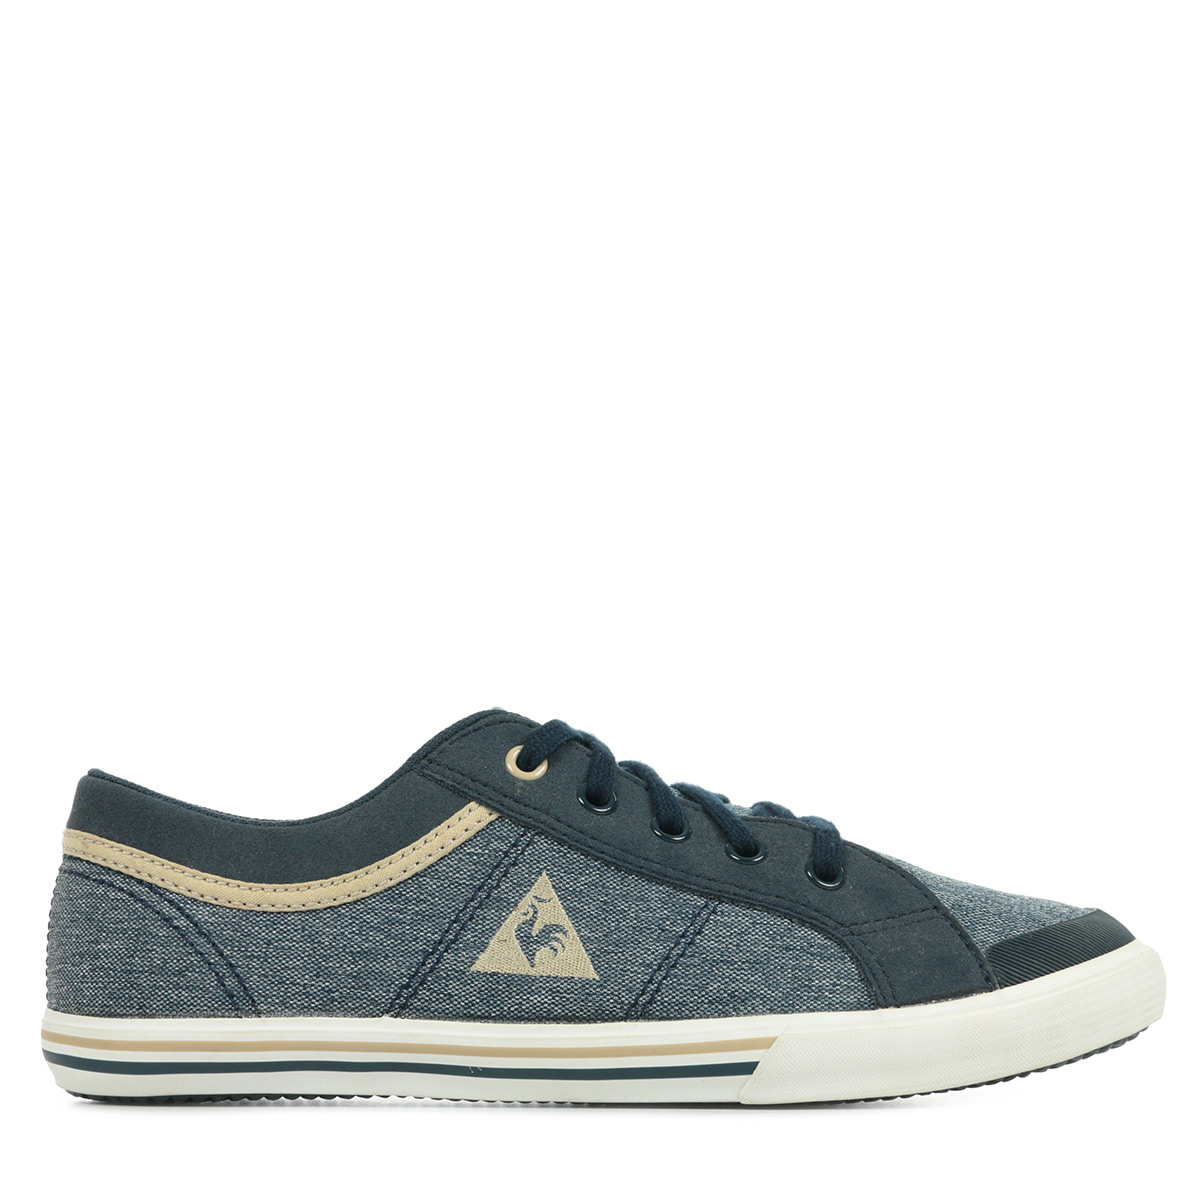 Baskets basses Le Coq Sportif Saint Gaetan GS Craft 2 Tones 77bOcc6v